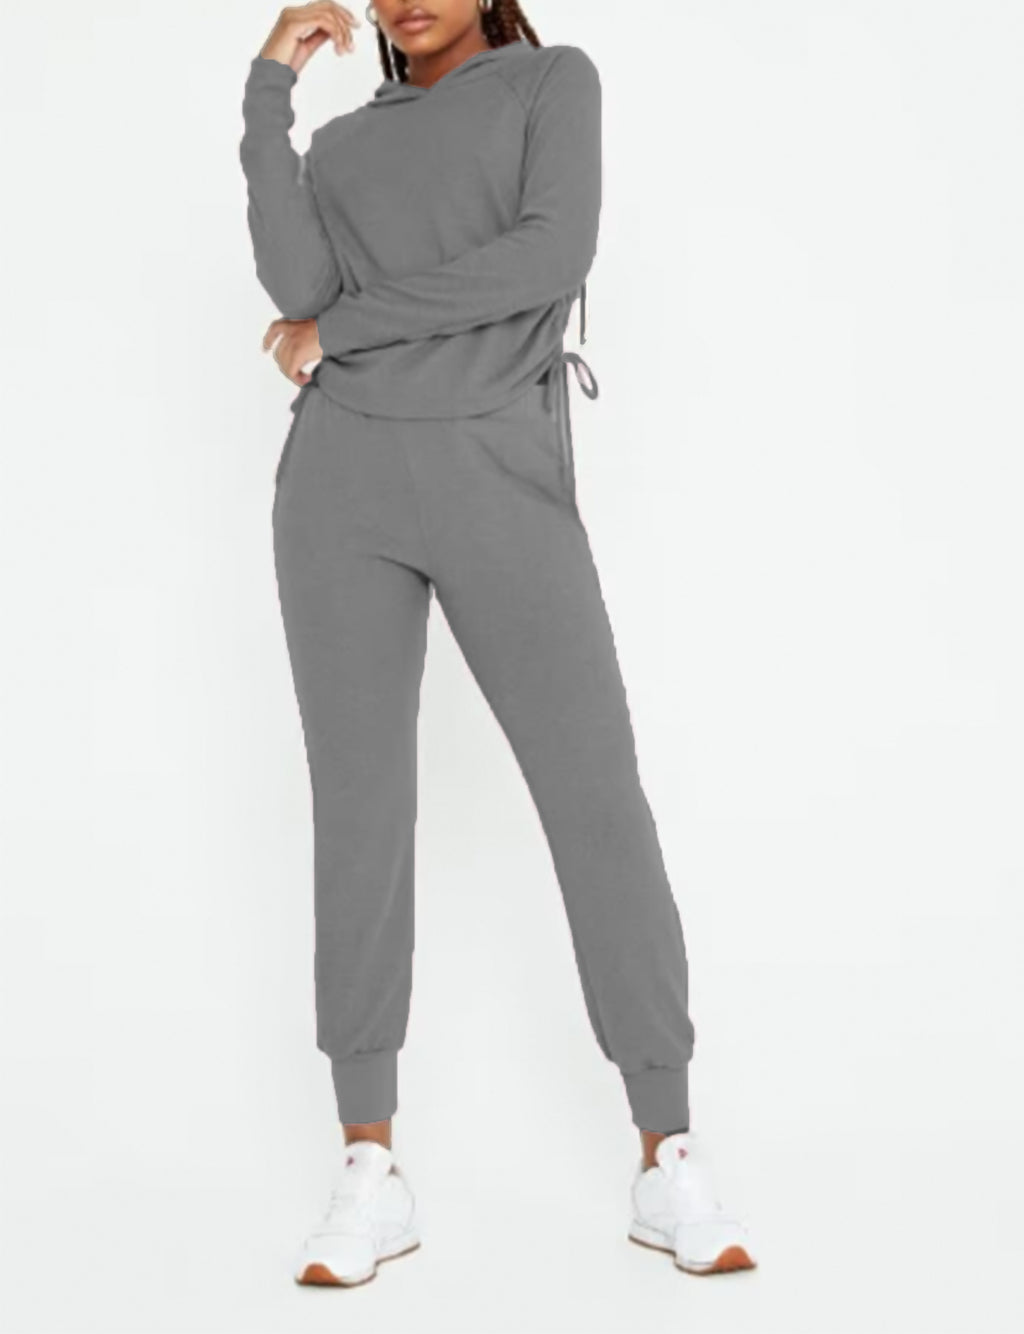 Easy Livin' Cozy Pant in Heather Grey